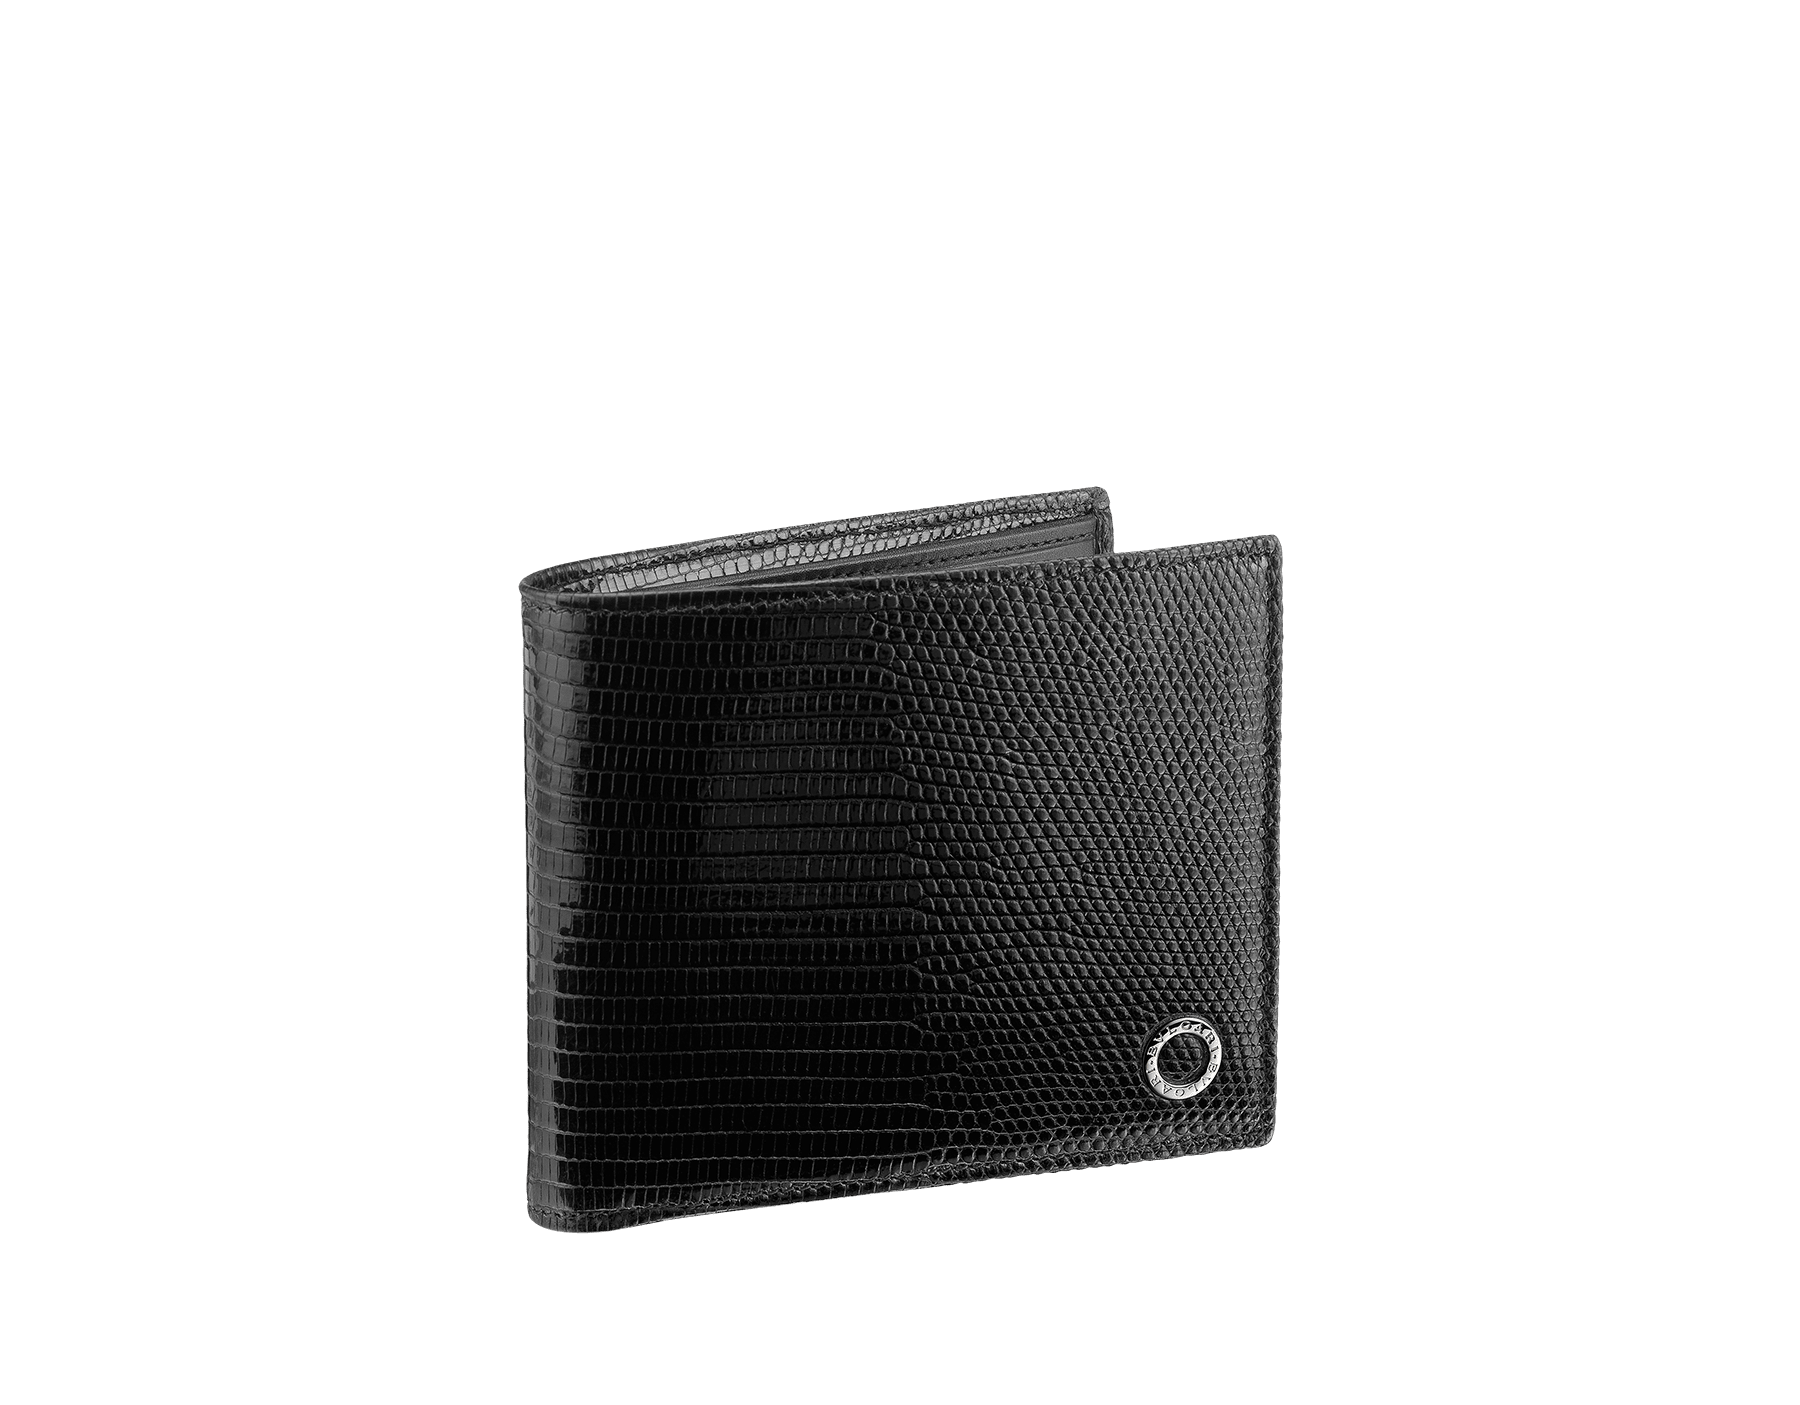 Wallet hipster for men in black shiny lizard skin and royal nappa lining. Brass palladium plated hardware featuring the BVLGARI BVLGARI motif. 285327 image 1